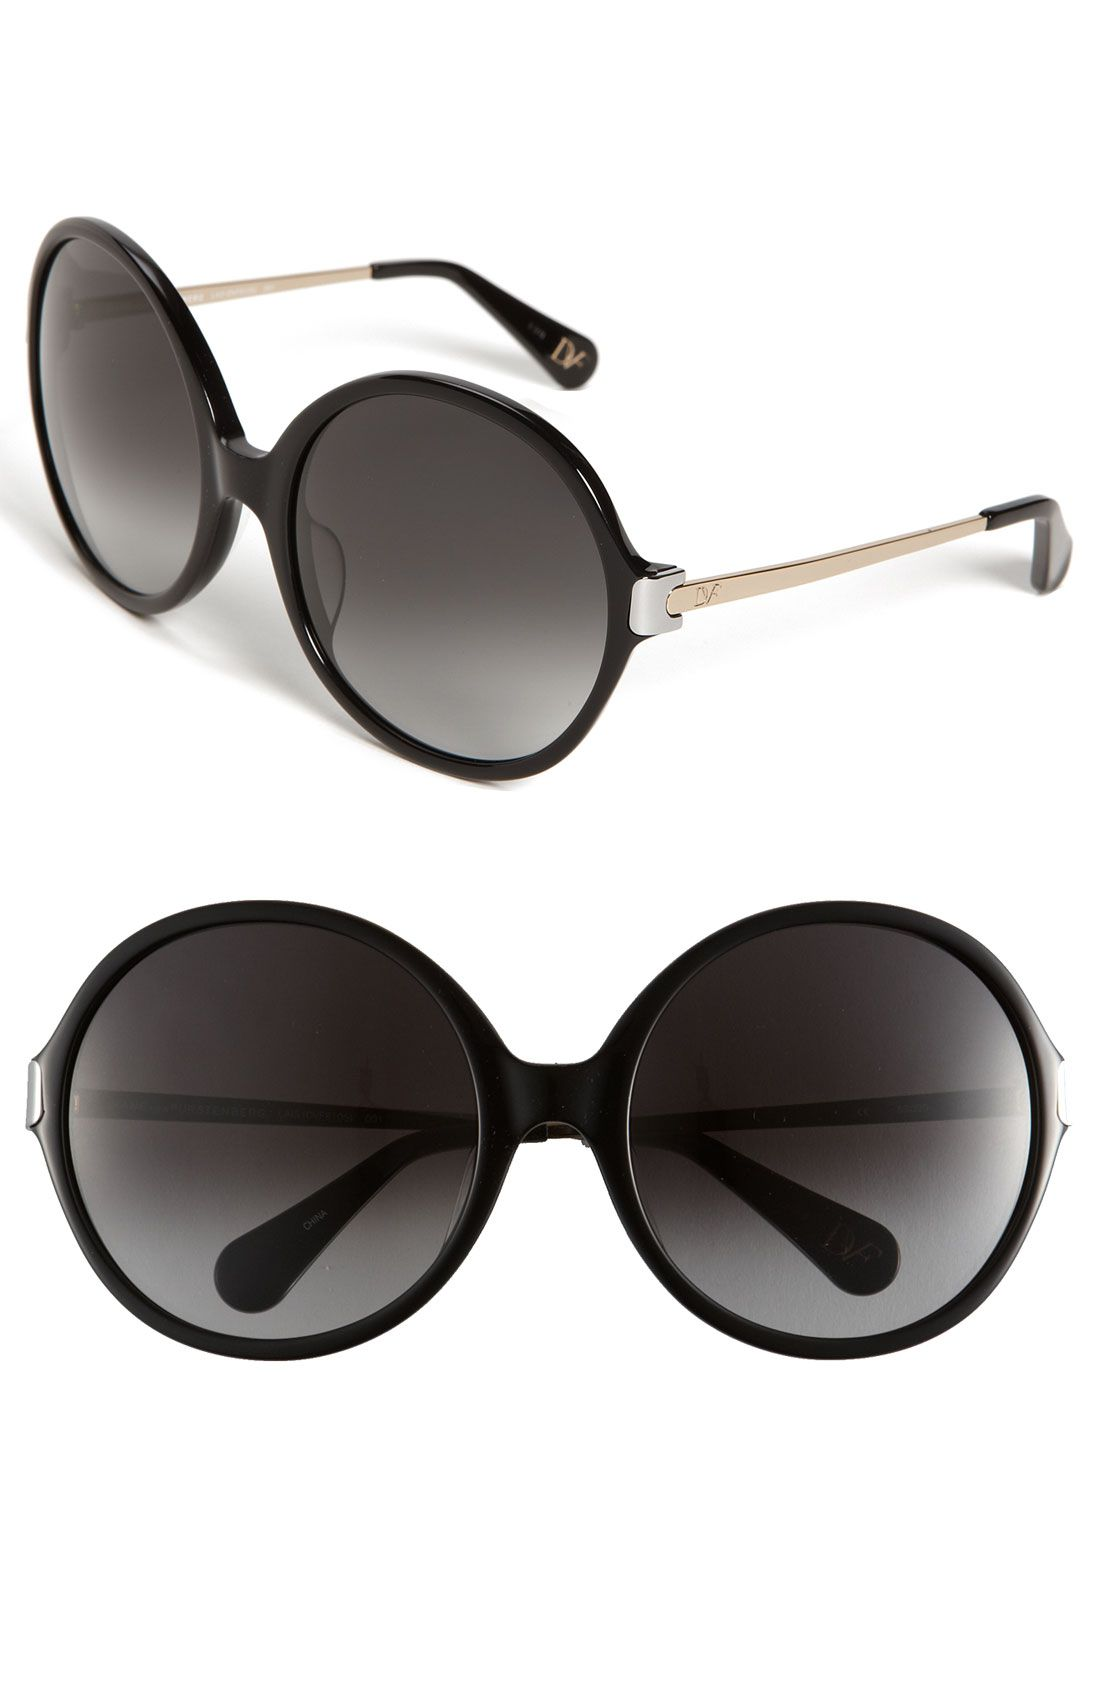 e25a9d30924 Free shipping and returns on Diane von Furstenberg  Lais  Oversized Round  Sunglasses at Nordstrom.com. Logo engraving brands the sleek metal temples  of chic ...